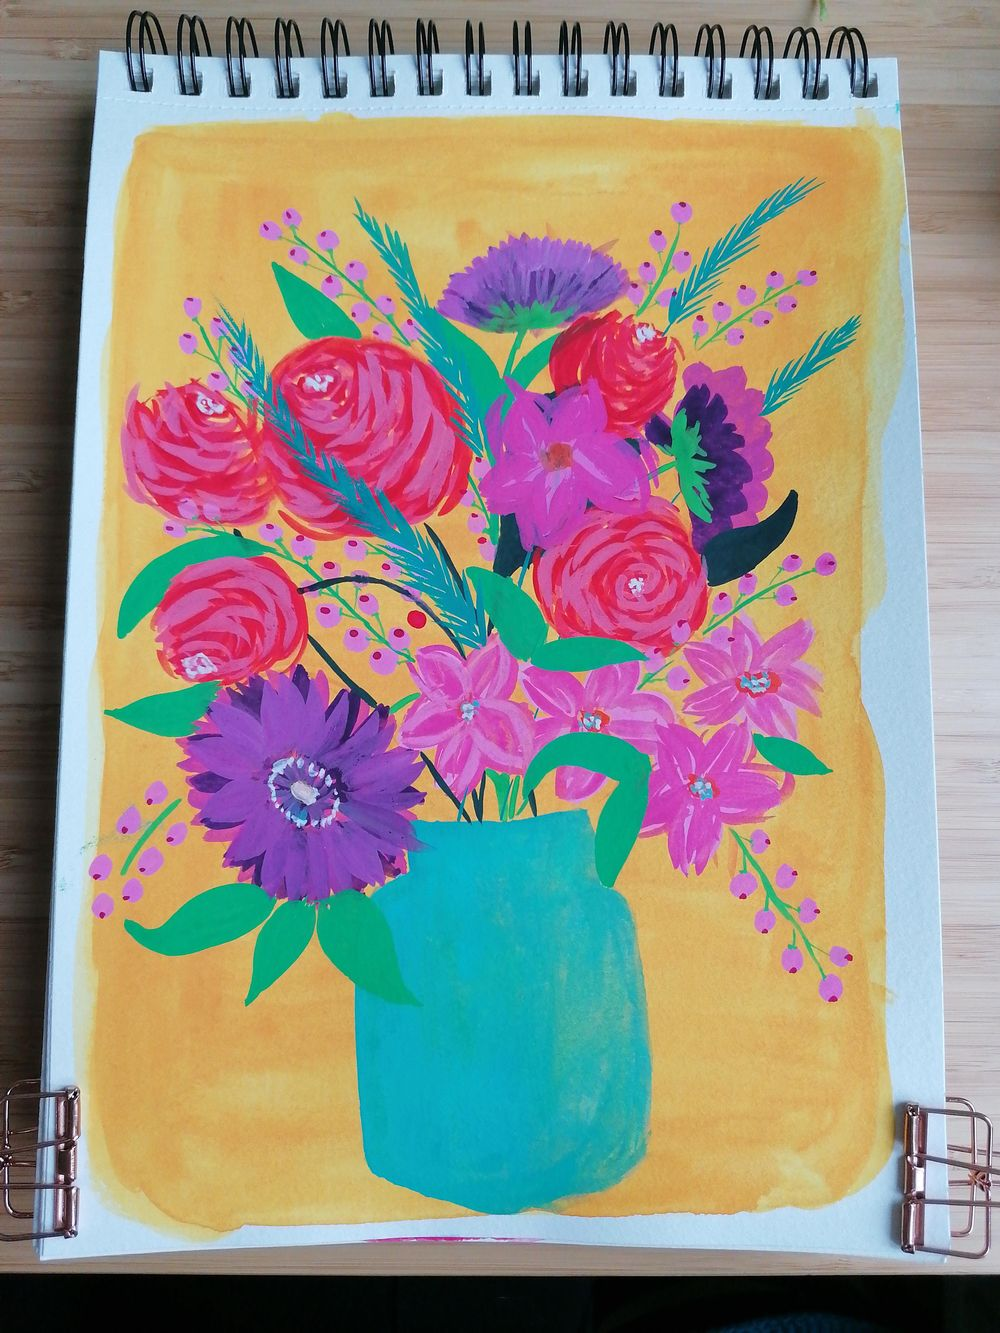 Flower bouquet with gouache - image 1 - student project